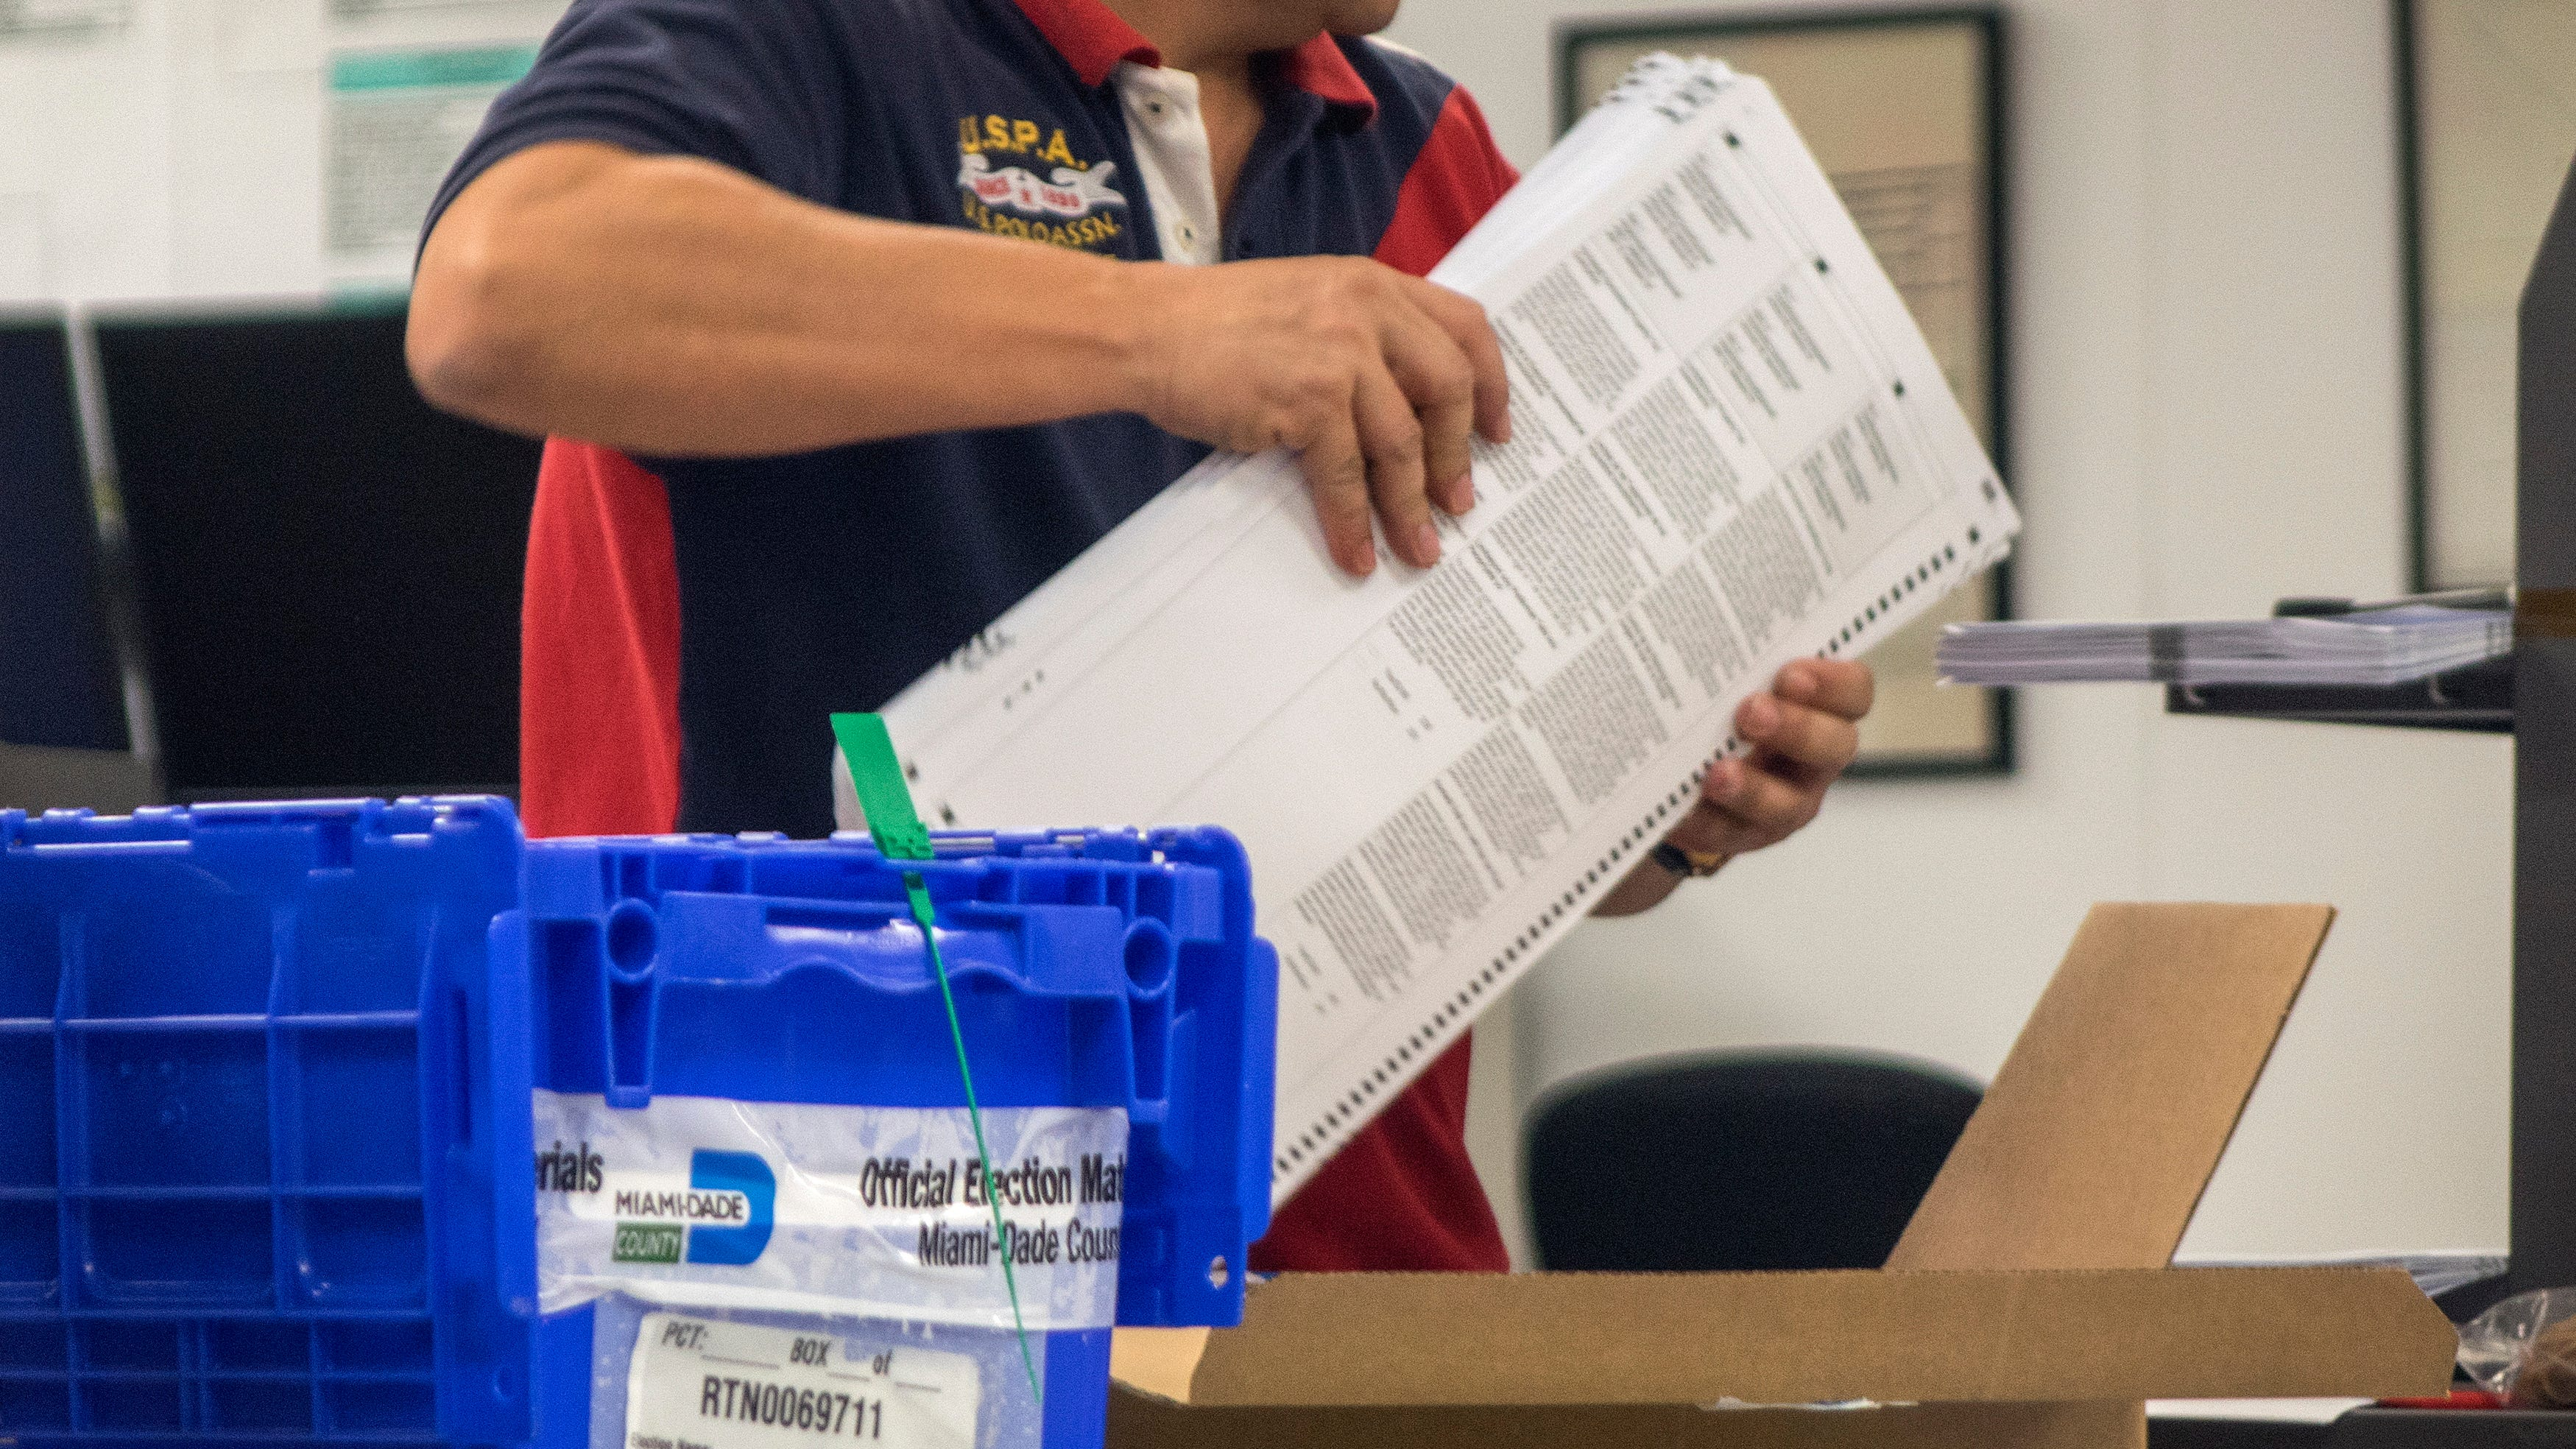 A staff member of the Miami Dade County Election Department works on the recount of the mid-term election vote at the Miami-Dade Election Department in Miami, on Nov. 10, 2018.